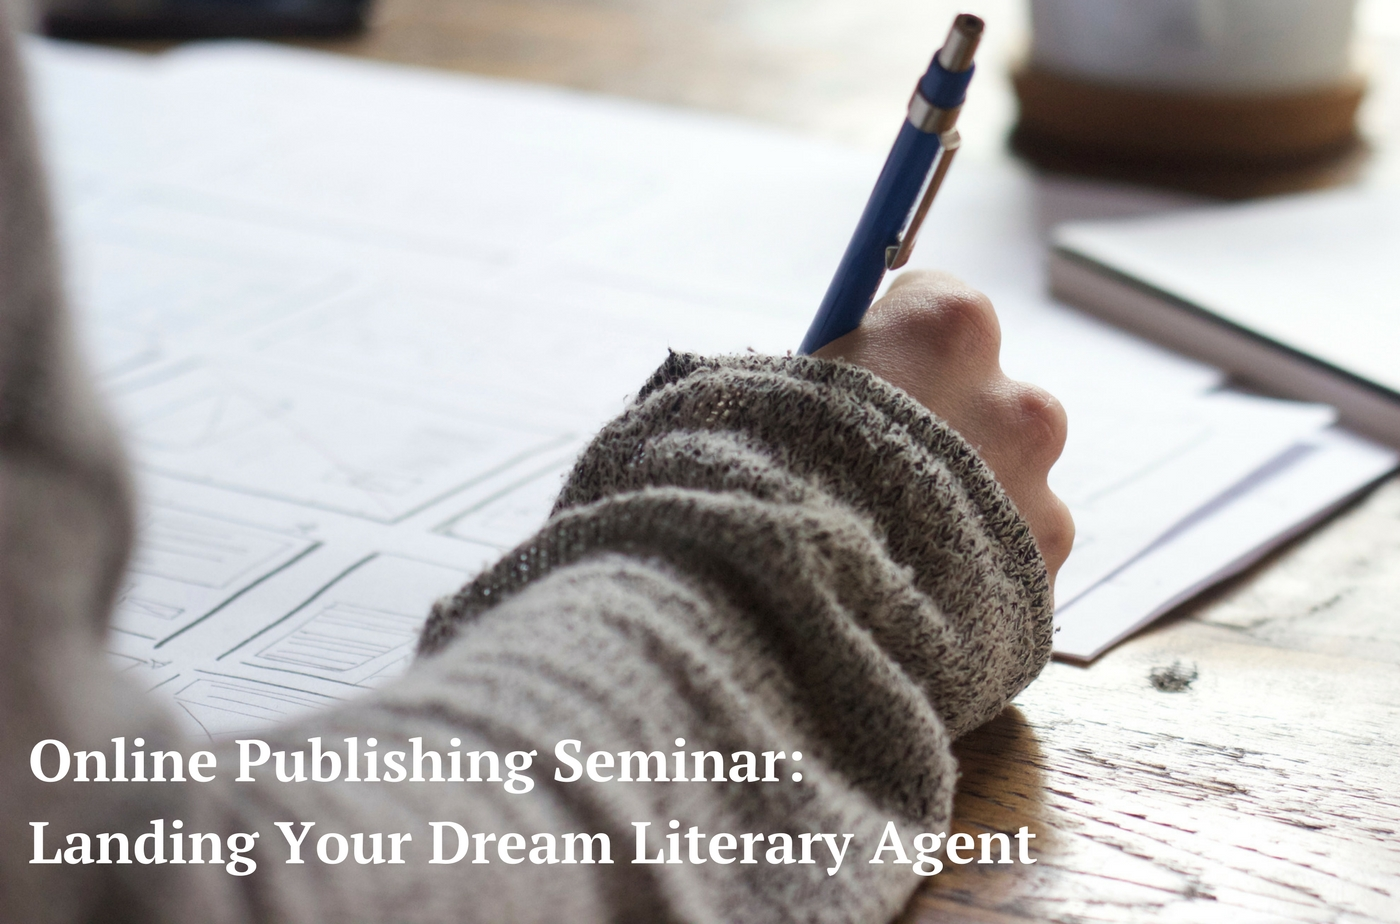 Catapult online classes: Sarah Bowlin, Julie Buntin, Publishing Seminar: Writing the Query Letter &  Landing Your Dream Literary Agent  , Publishing, Independent Study